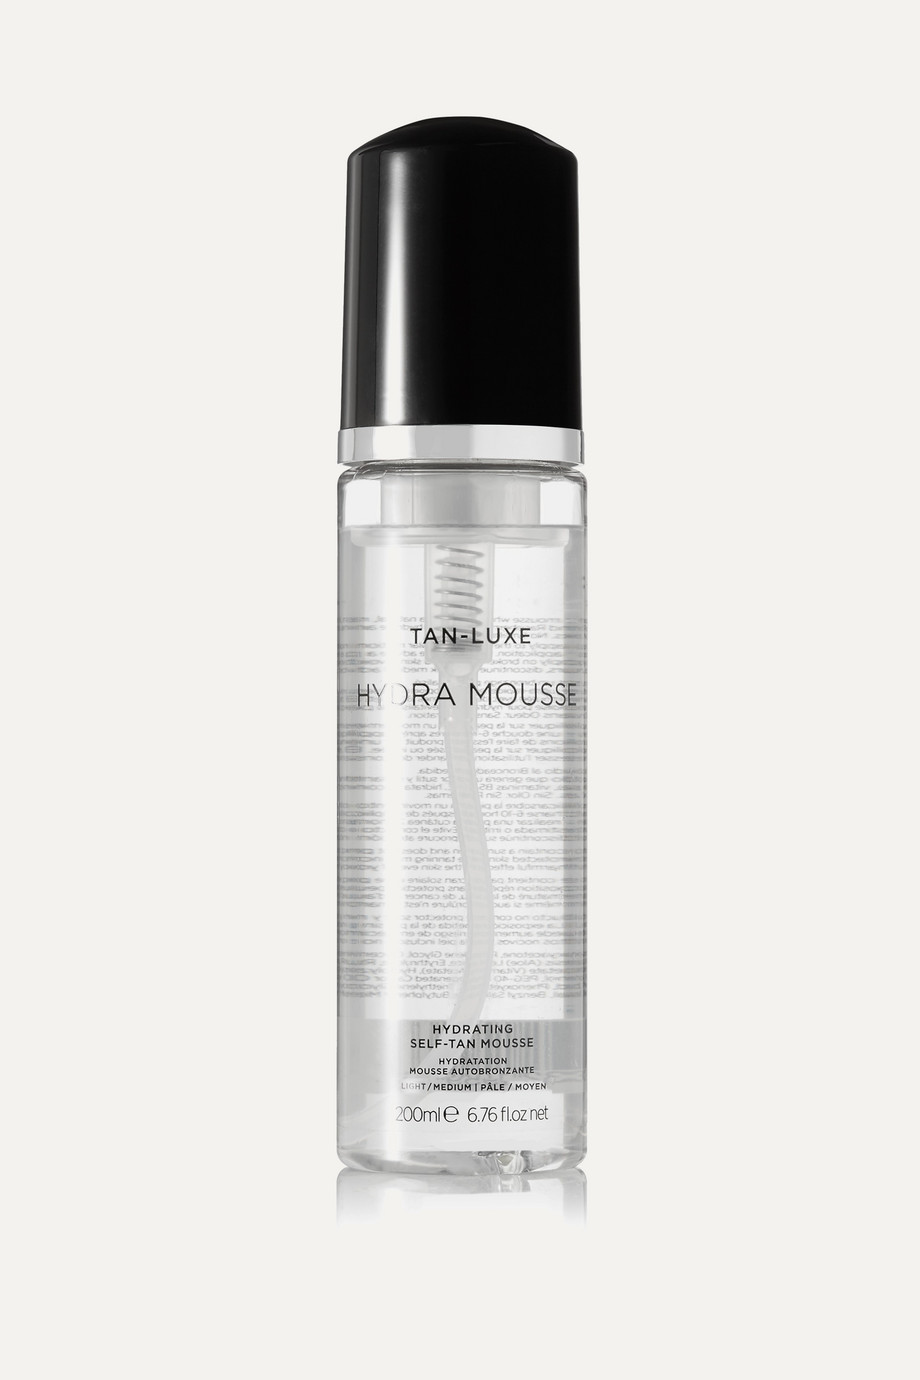 TAN-LUXE Hydra-Mousse Hydrating Self-Tan Mousse - Light/Medium, 200ml